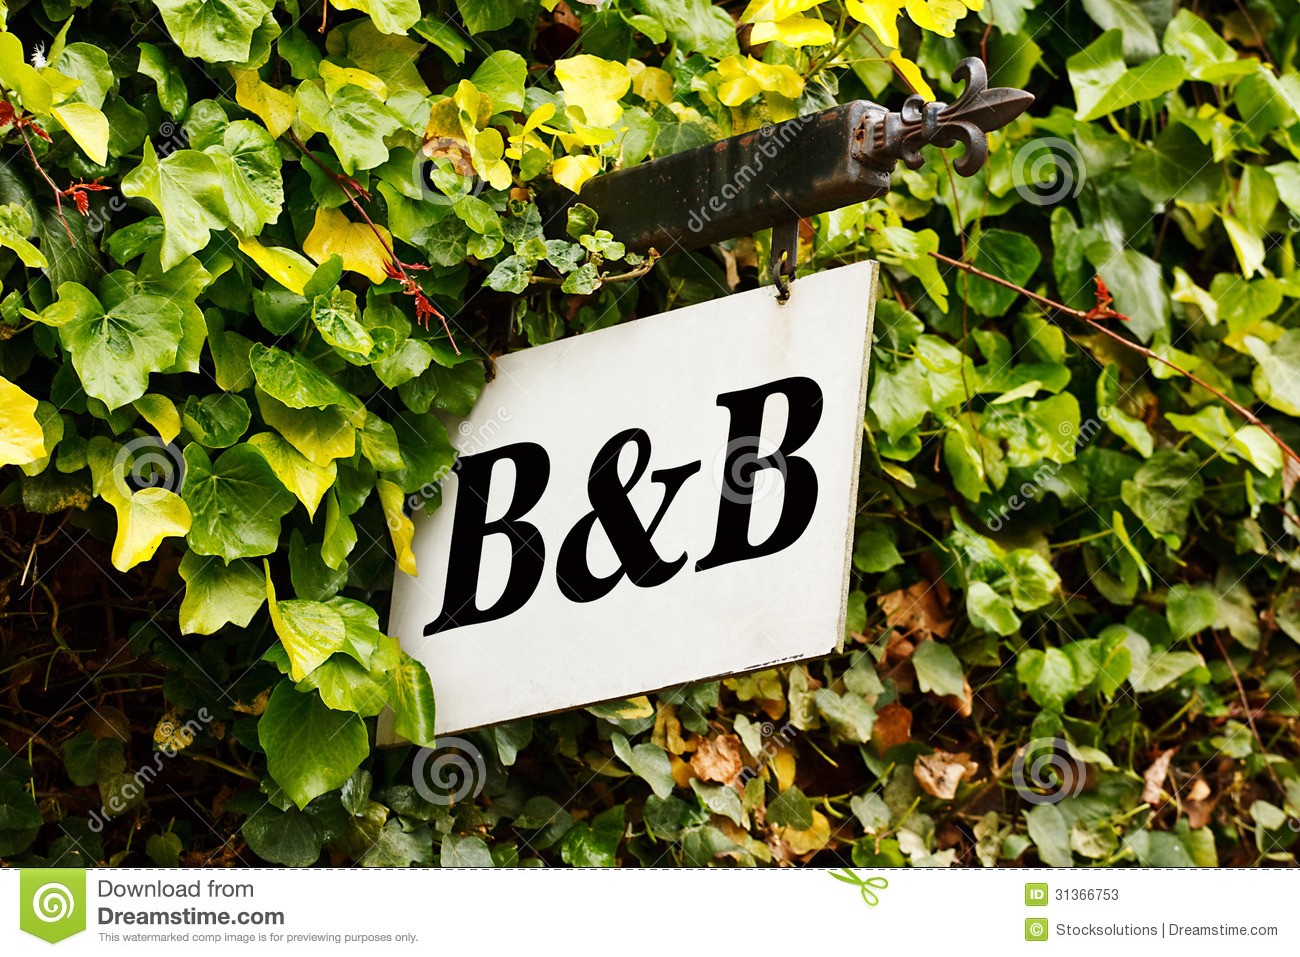 Bed And Breakfast Sign Stock Photos Image 31366753